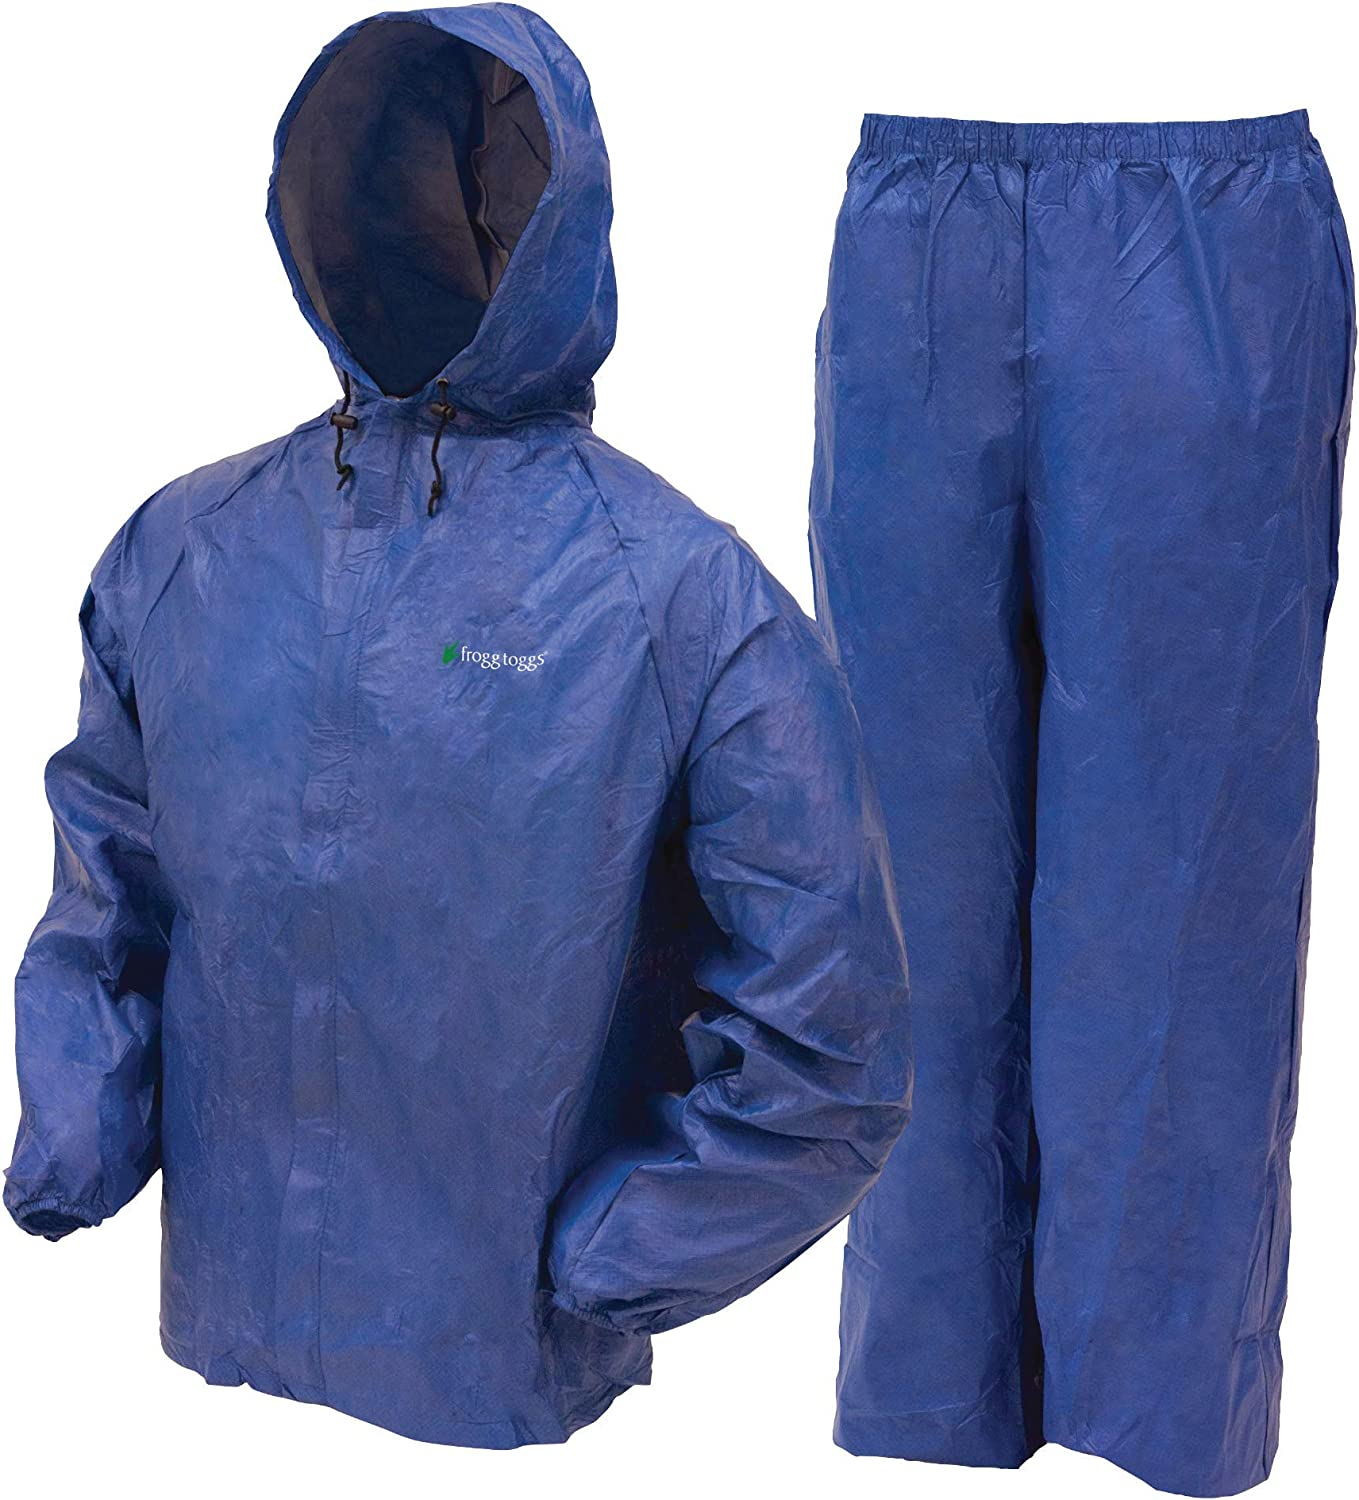 FROGG TOGGS Mens Ultra-Lite2 Waterproof Breathable Protective Rain Suit